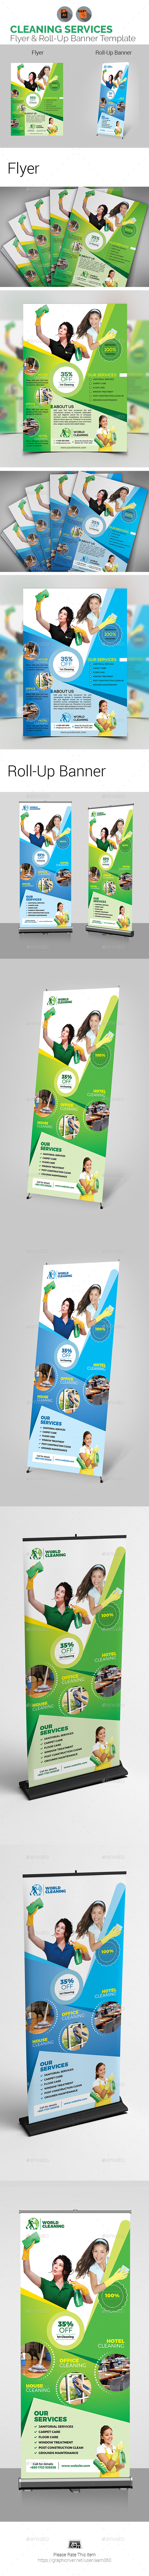 Cleaning Services Flyer & Roll-Up Template Bundle - Print Templates